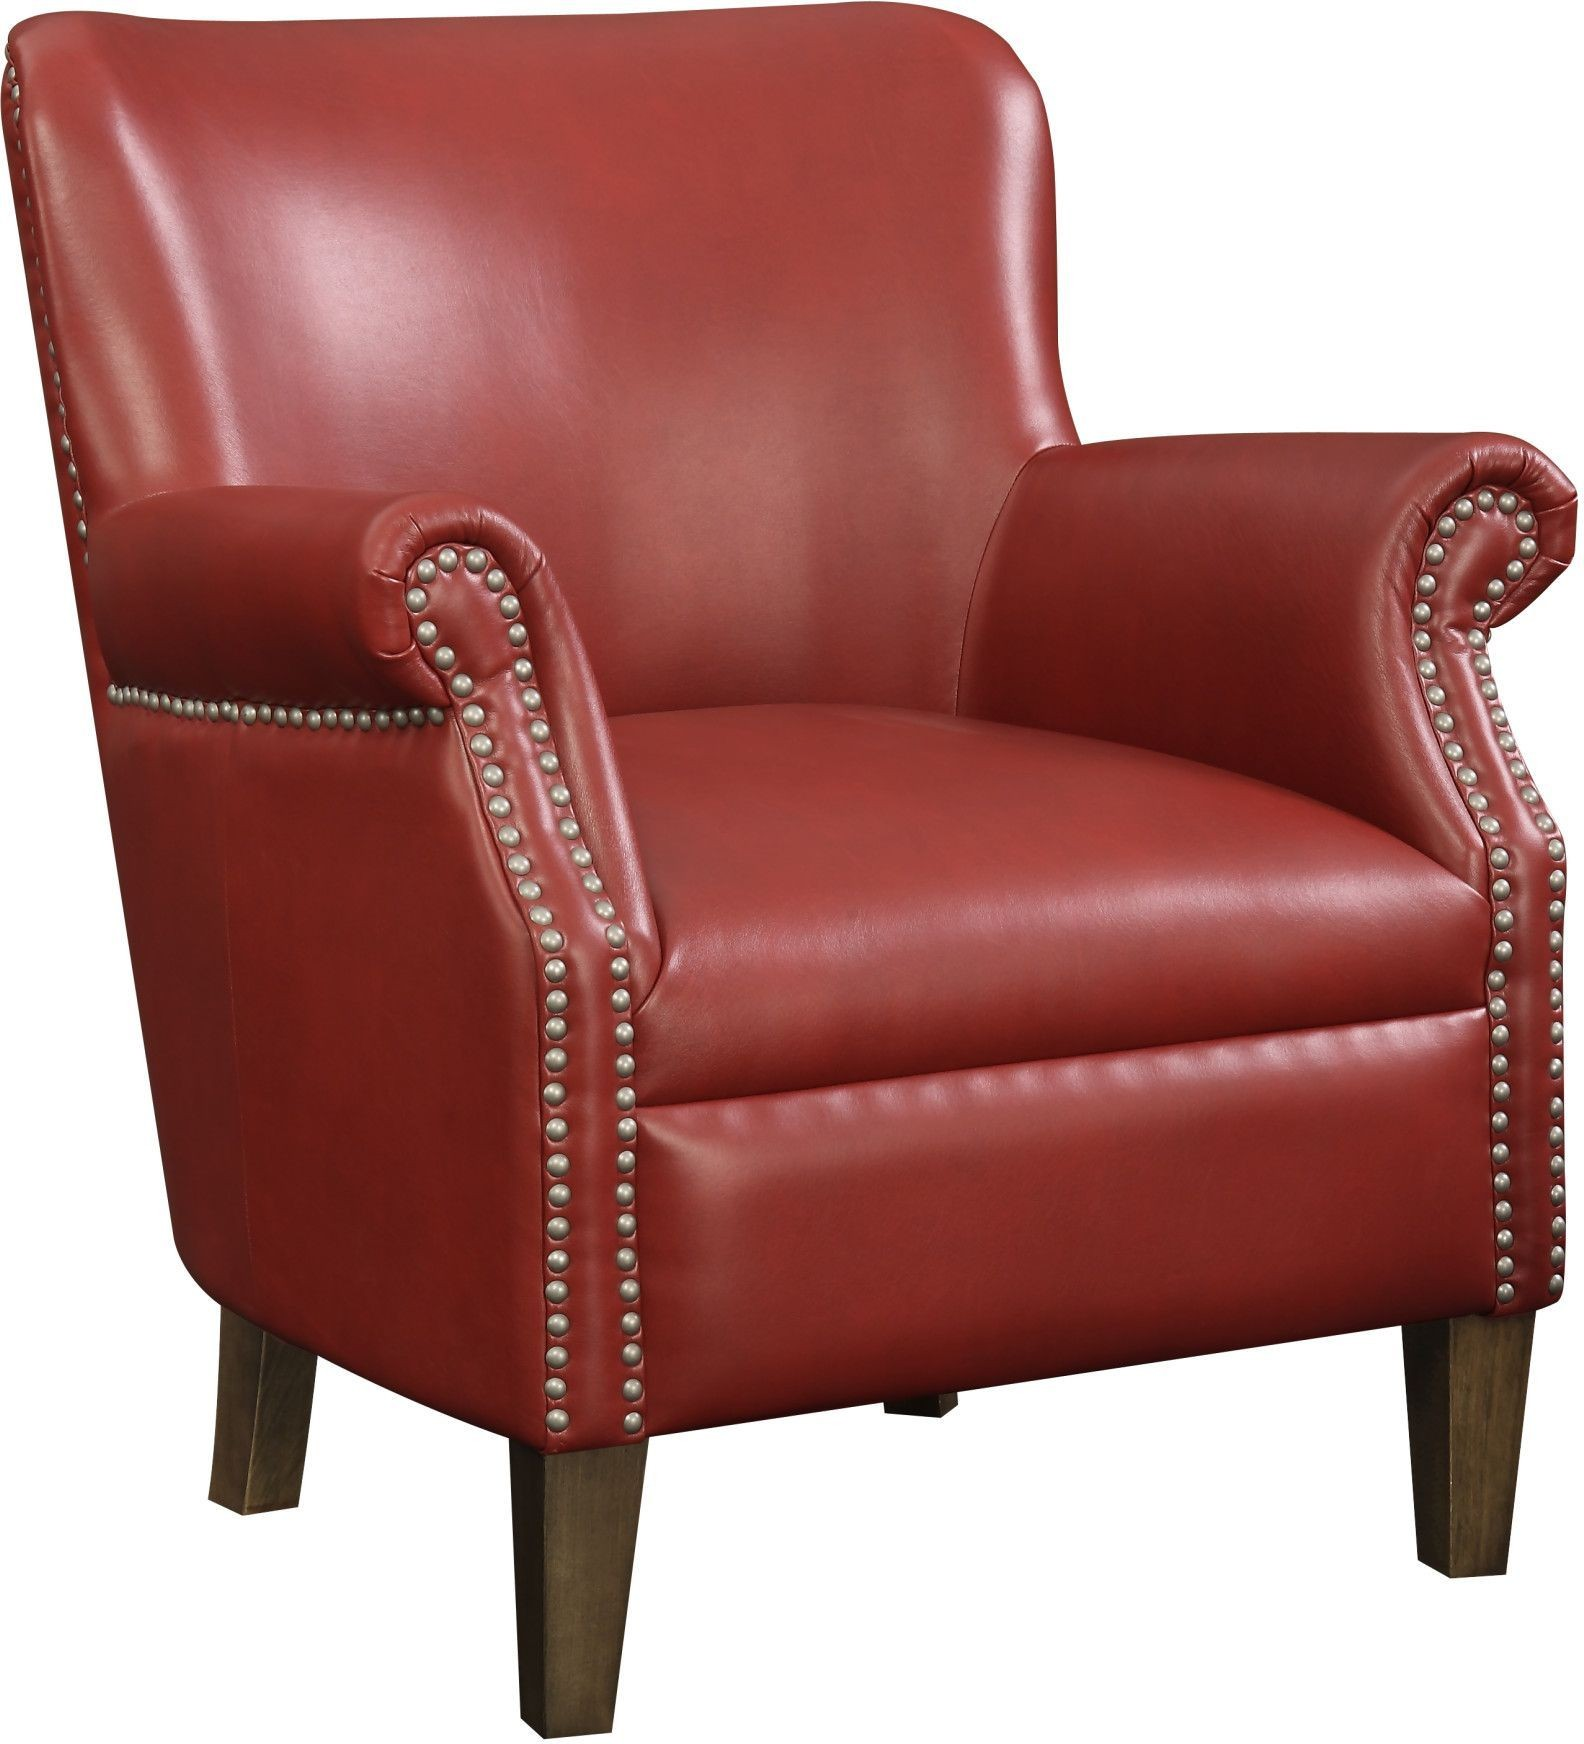 Oscar Red Accent Chair from Emerald Home  Coleman Furniture